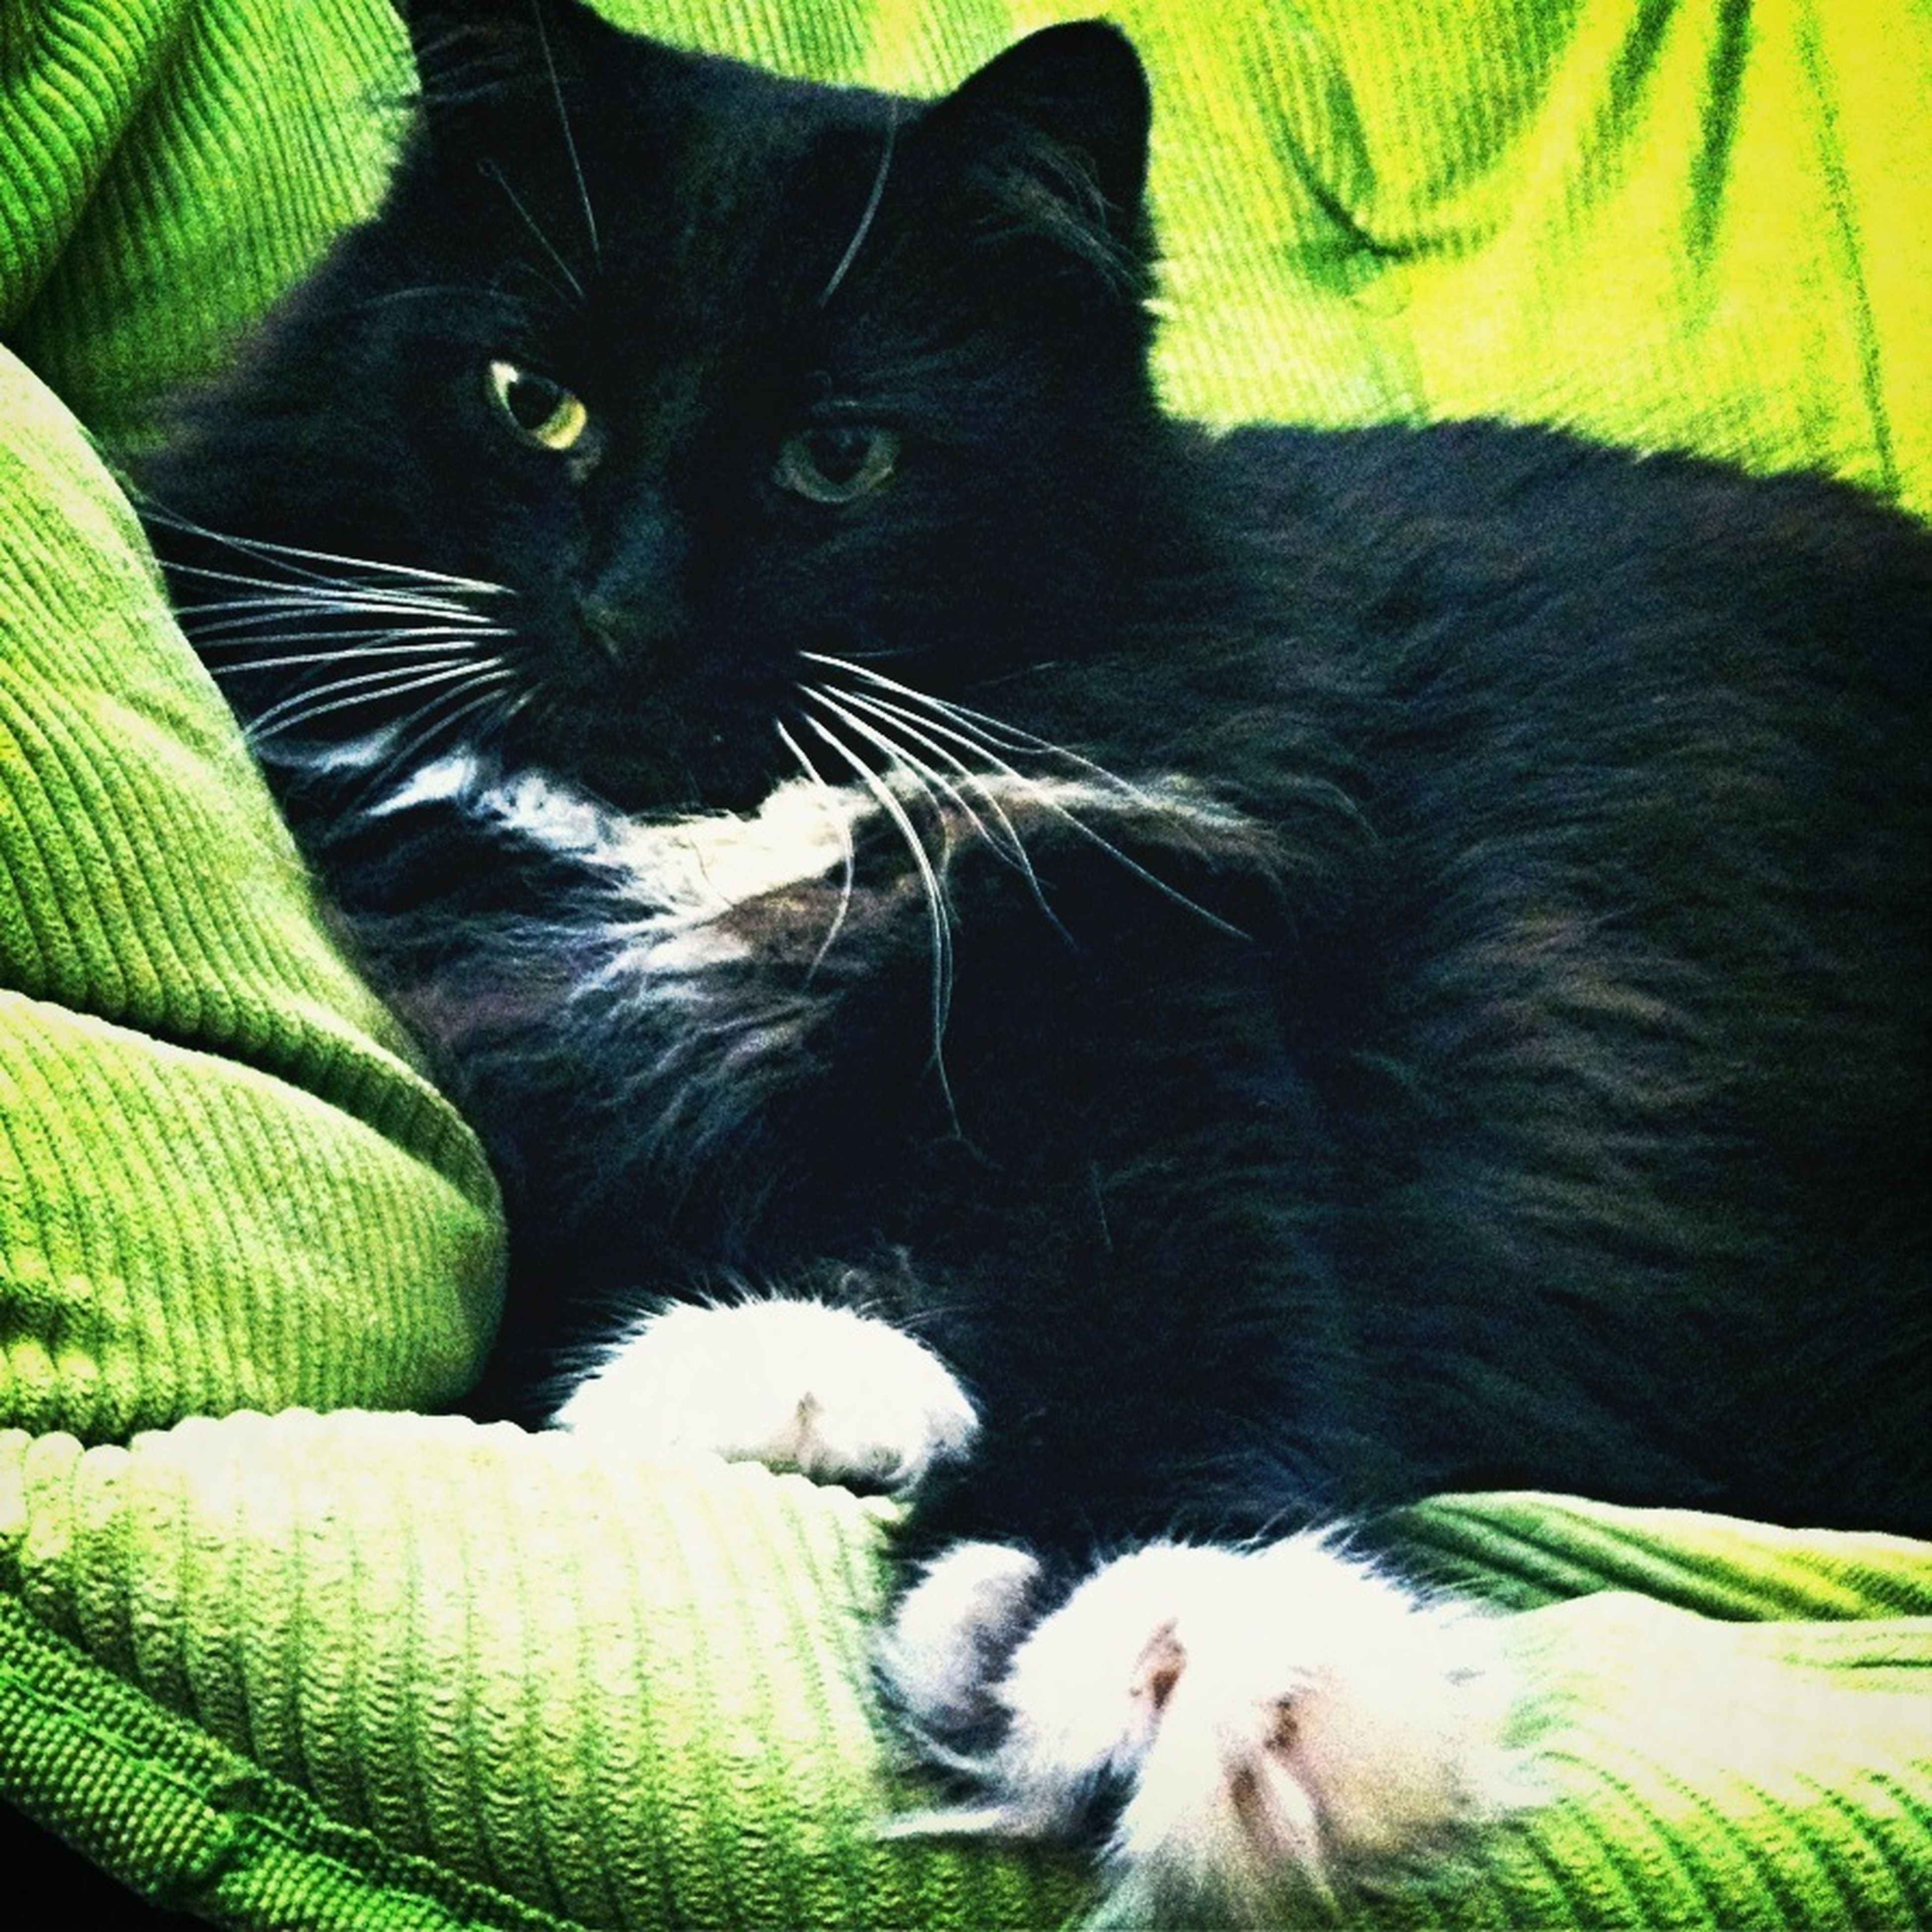 pets, domestic cat, domestic animals, cat, animal themes, one animal, feline, mammal, indoors, relaxation, whisker, close-up, portrait, bed, looking at camera, animal head, sofa, resting, no people, black color